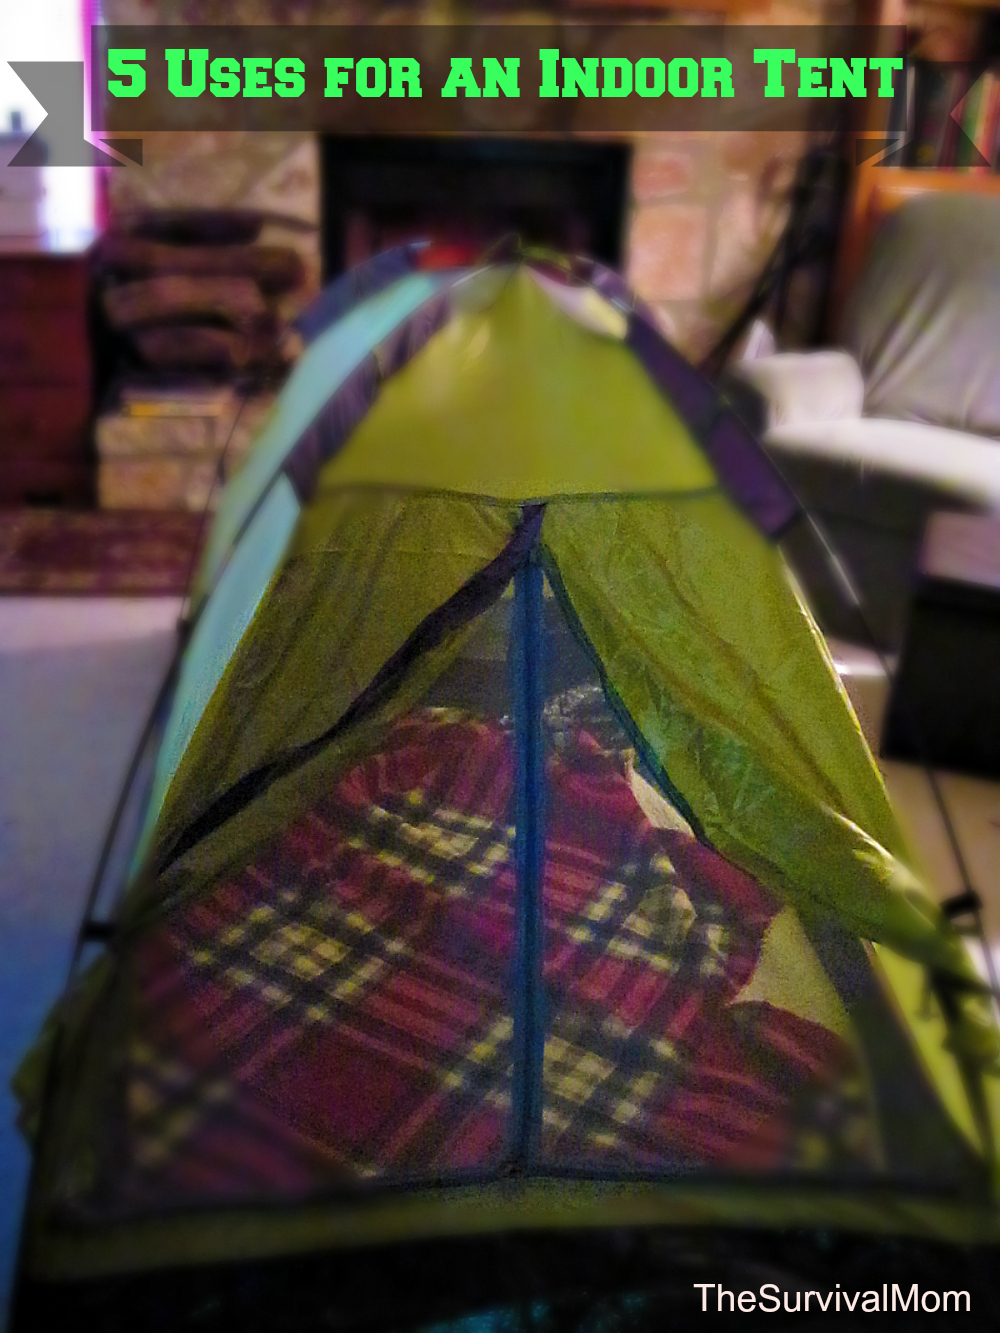 5 Uses for an Indoor Tent